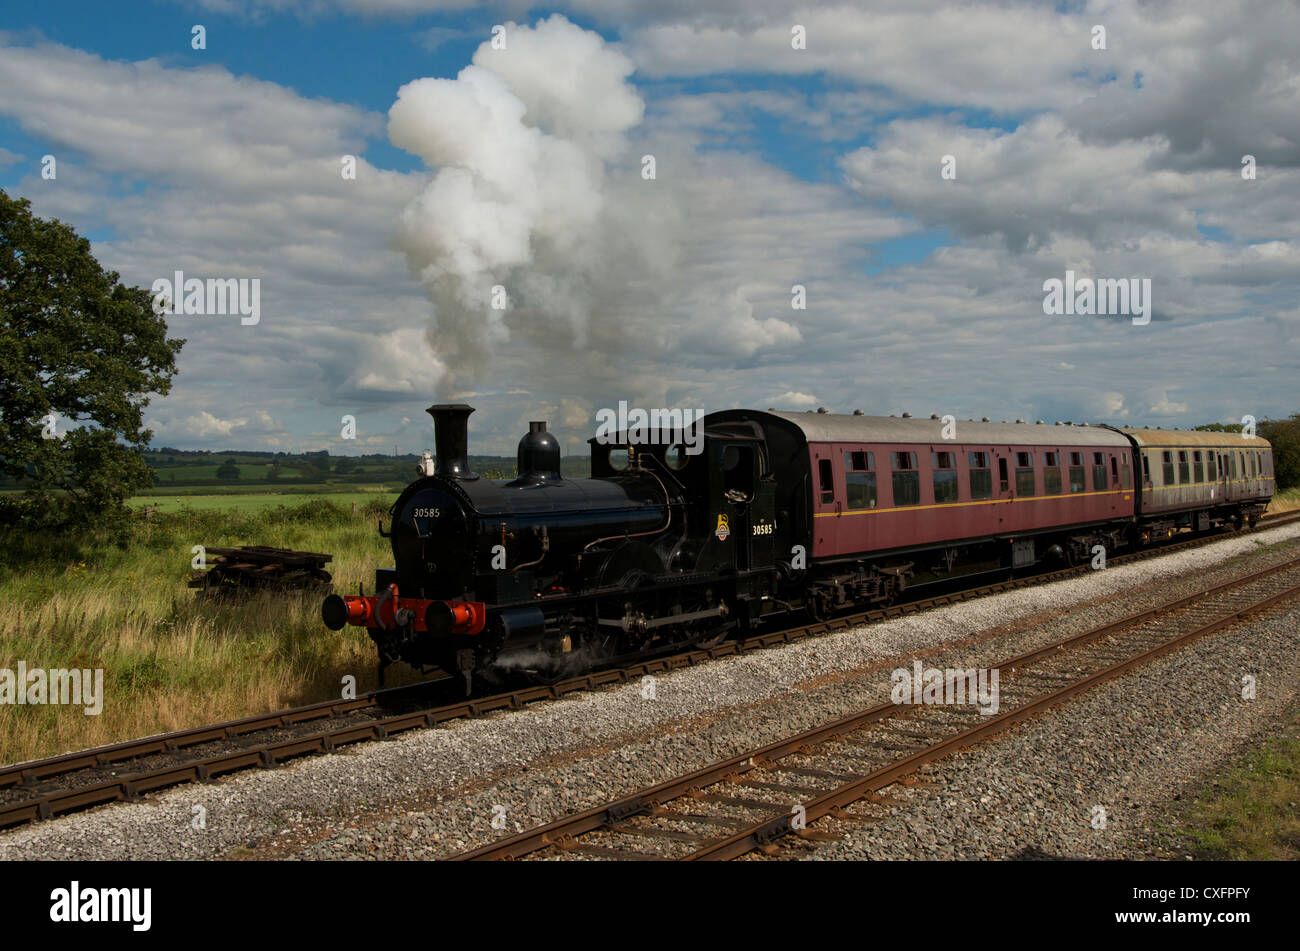 An old steam locomotive creates steam clouds that blend with the blue sky and clouds as it travels through the countryside. - Stock Image